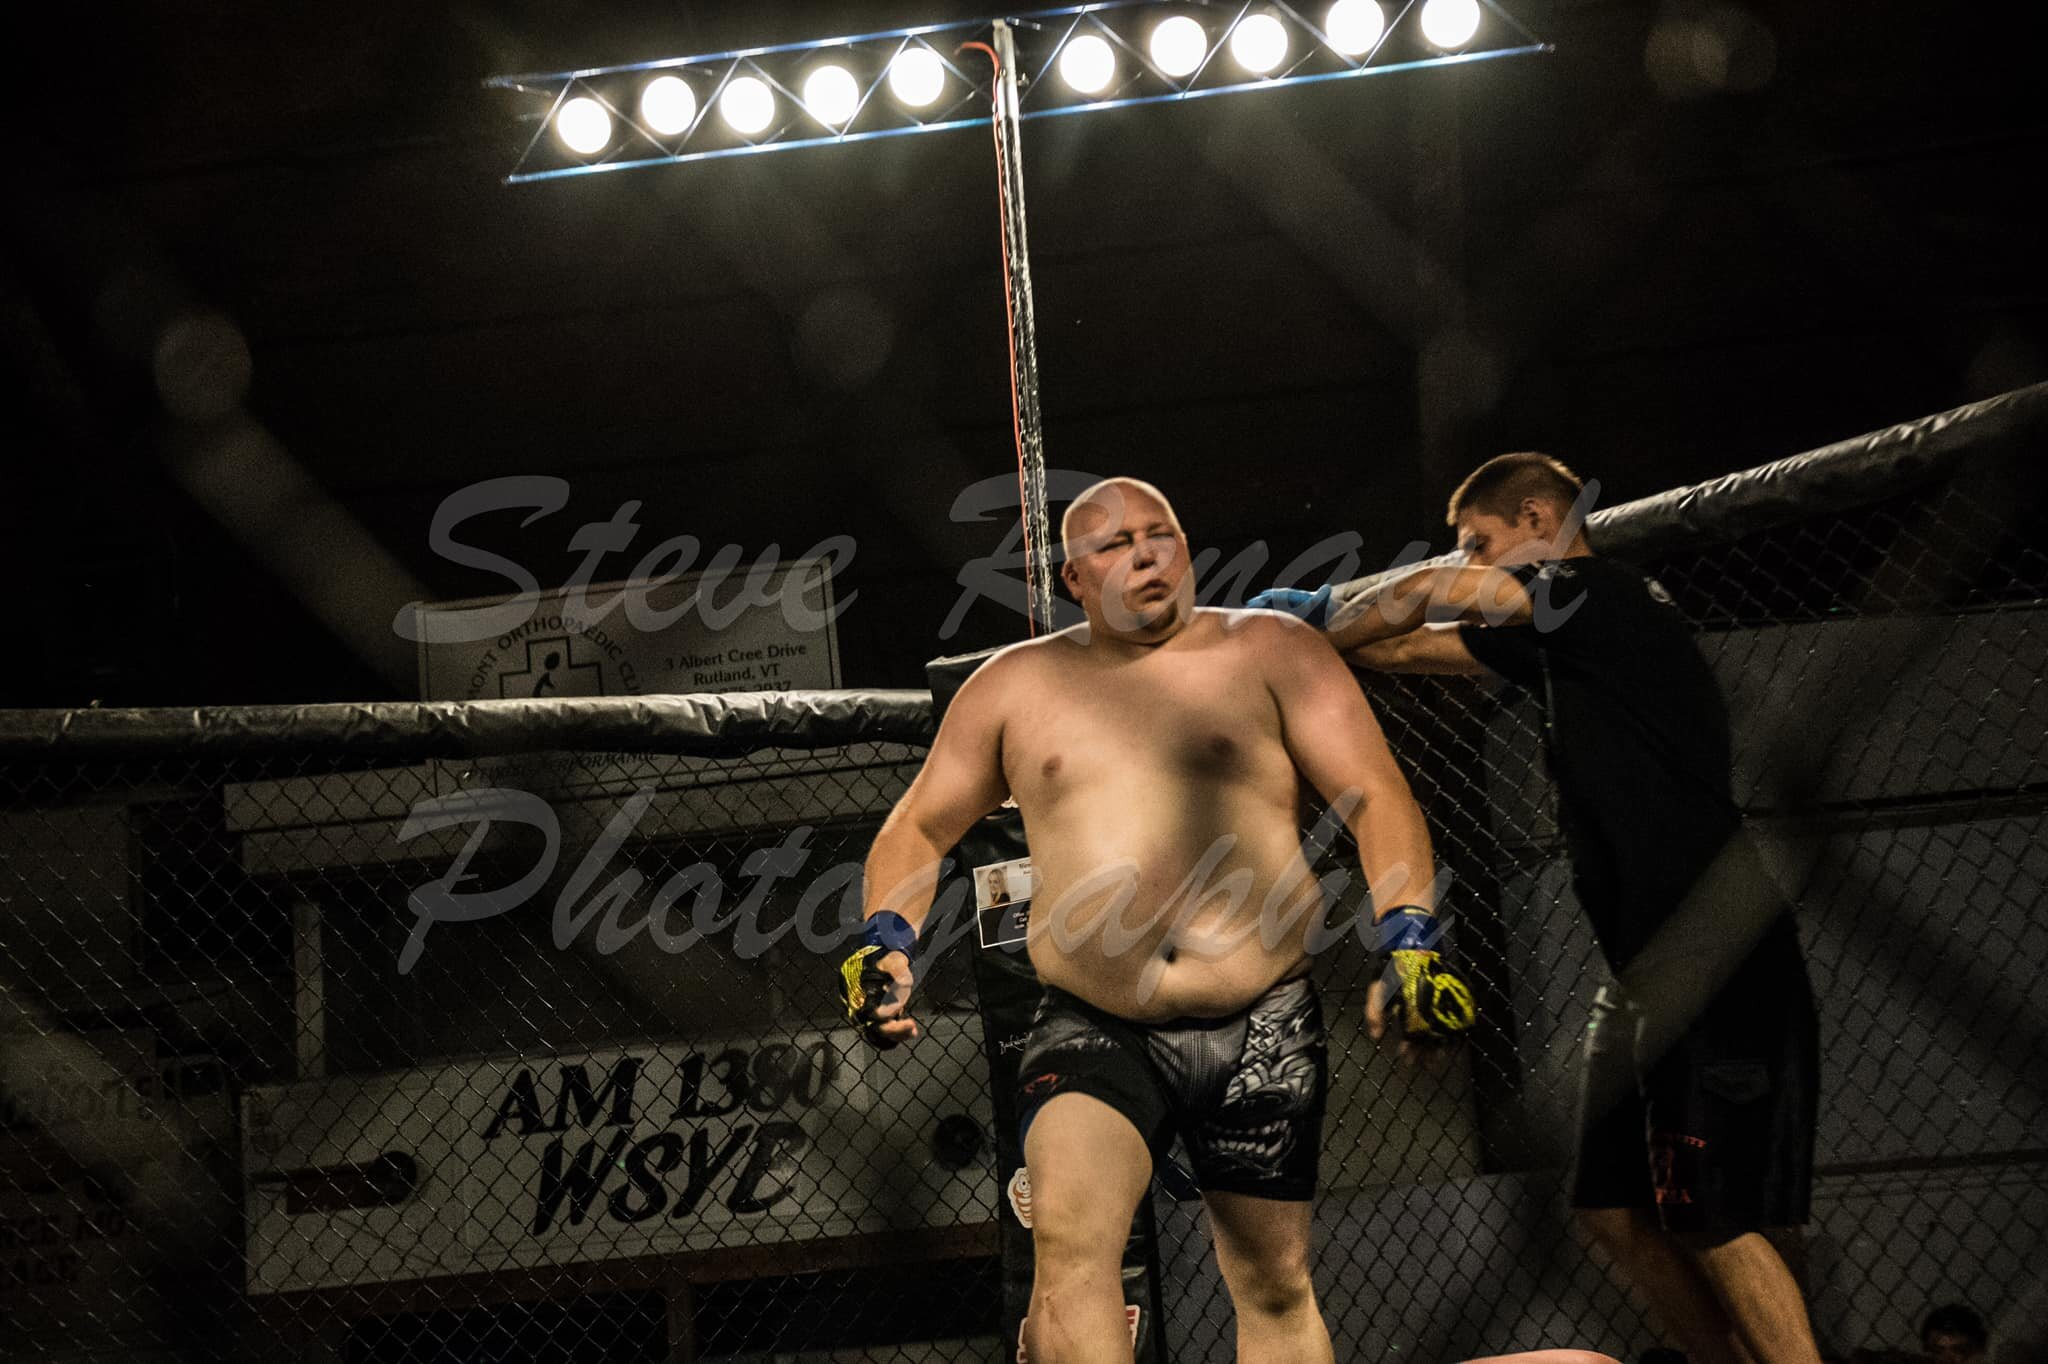 """RJ """"Bad Intentions"""" Hayes - RJ is a Heavyweight fighter that fights out of New York, Rj recently had his win streak broke losing to a very tough Mike Alessi at Cage Wars, He is looking to get back into the win column this Dec 21stIndependent fighter but has trained under Alex MarroFighting Style Muay Thai, BJJ"""